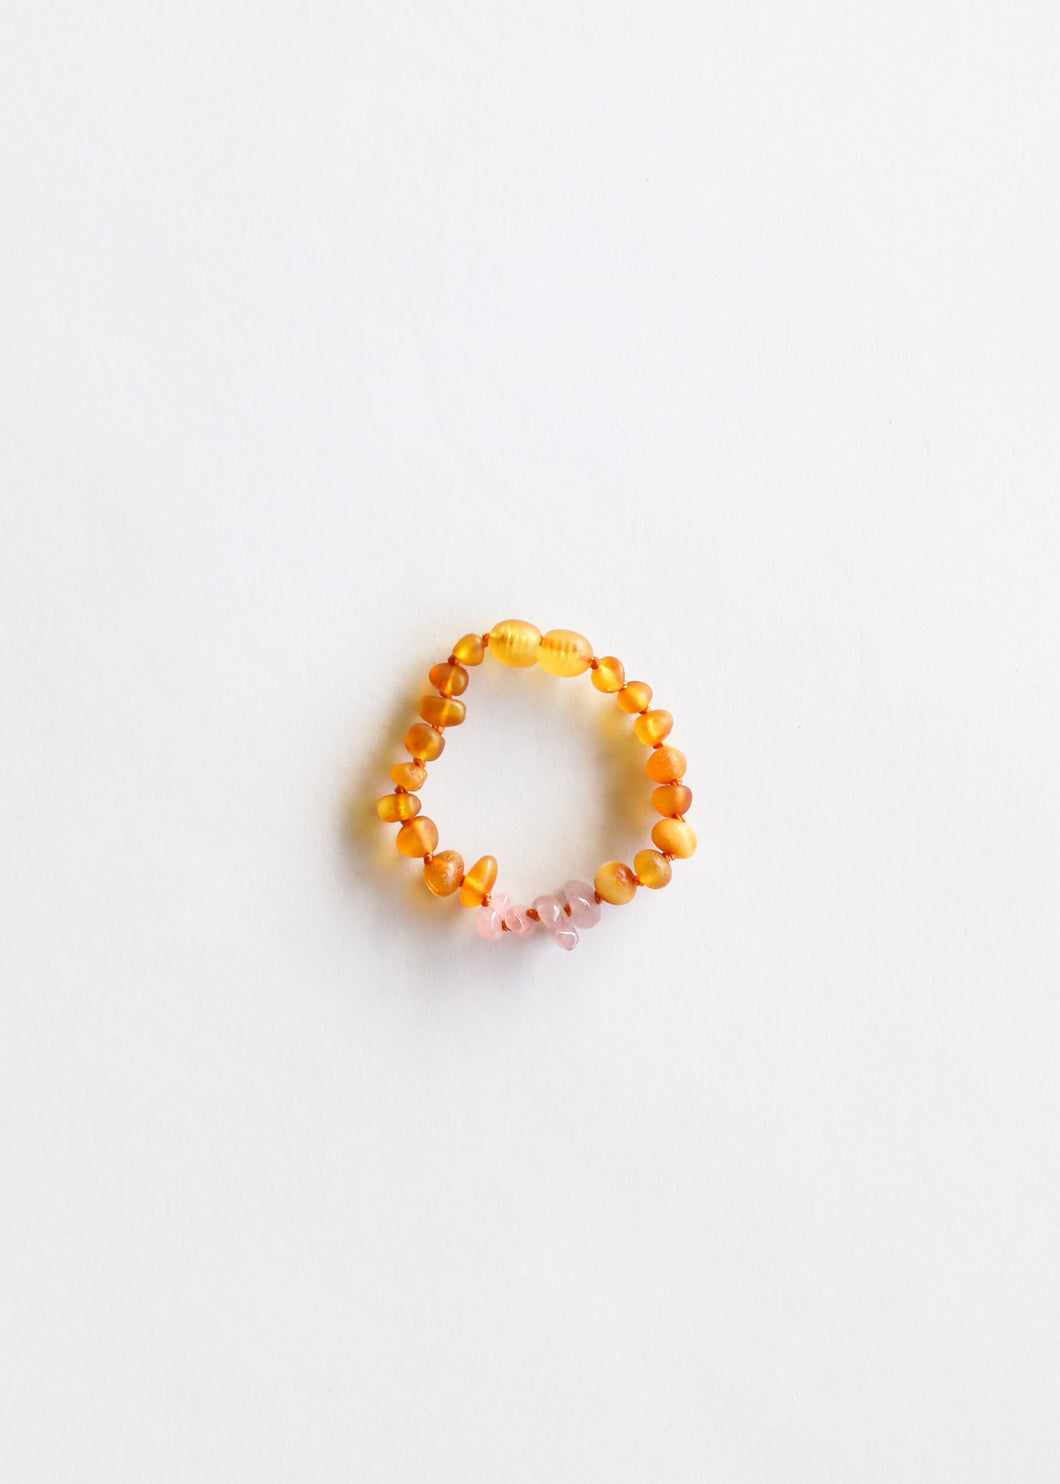 Bracelet/Anklet by Canyon Leaf | Raw Honey Amber + Rose Quartz